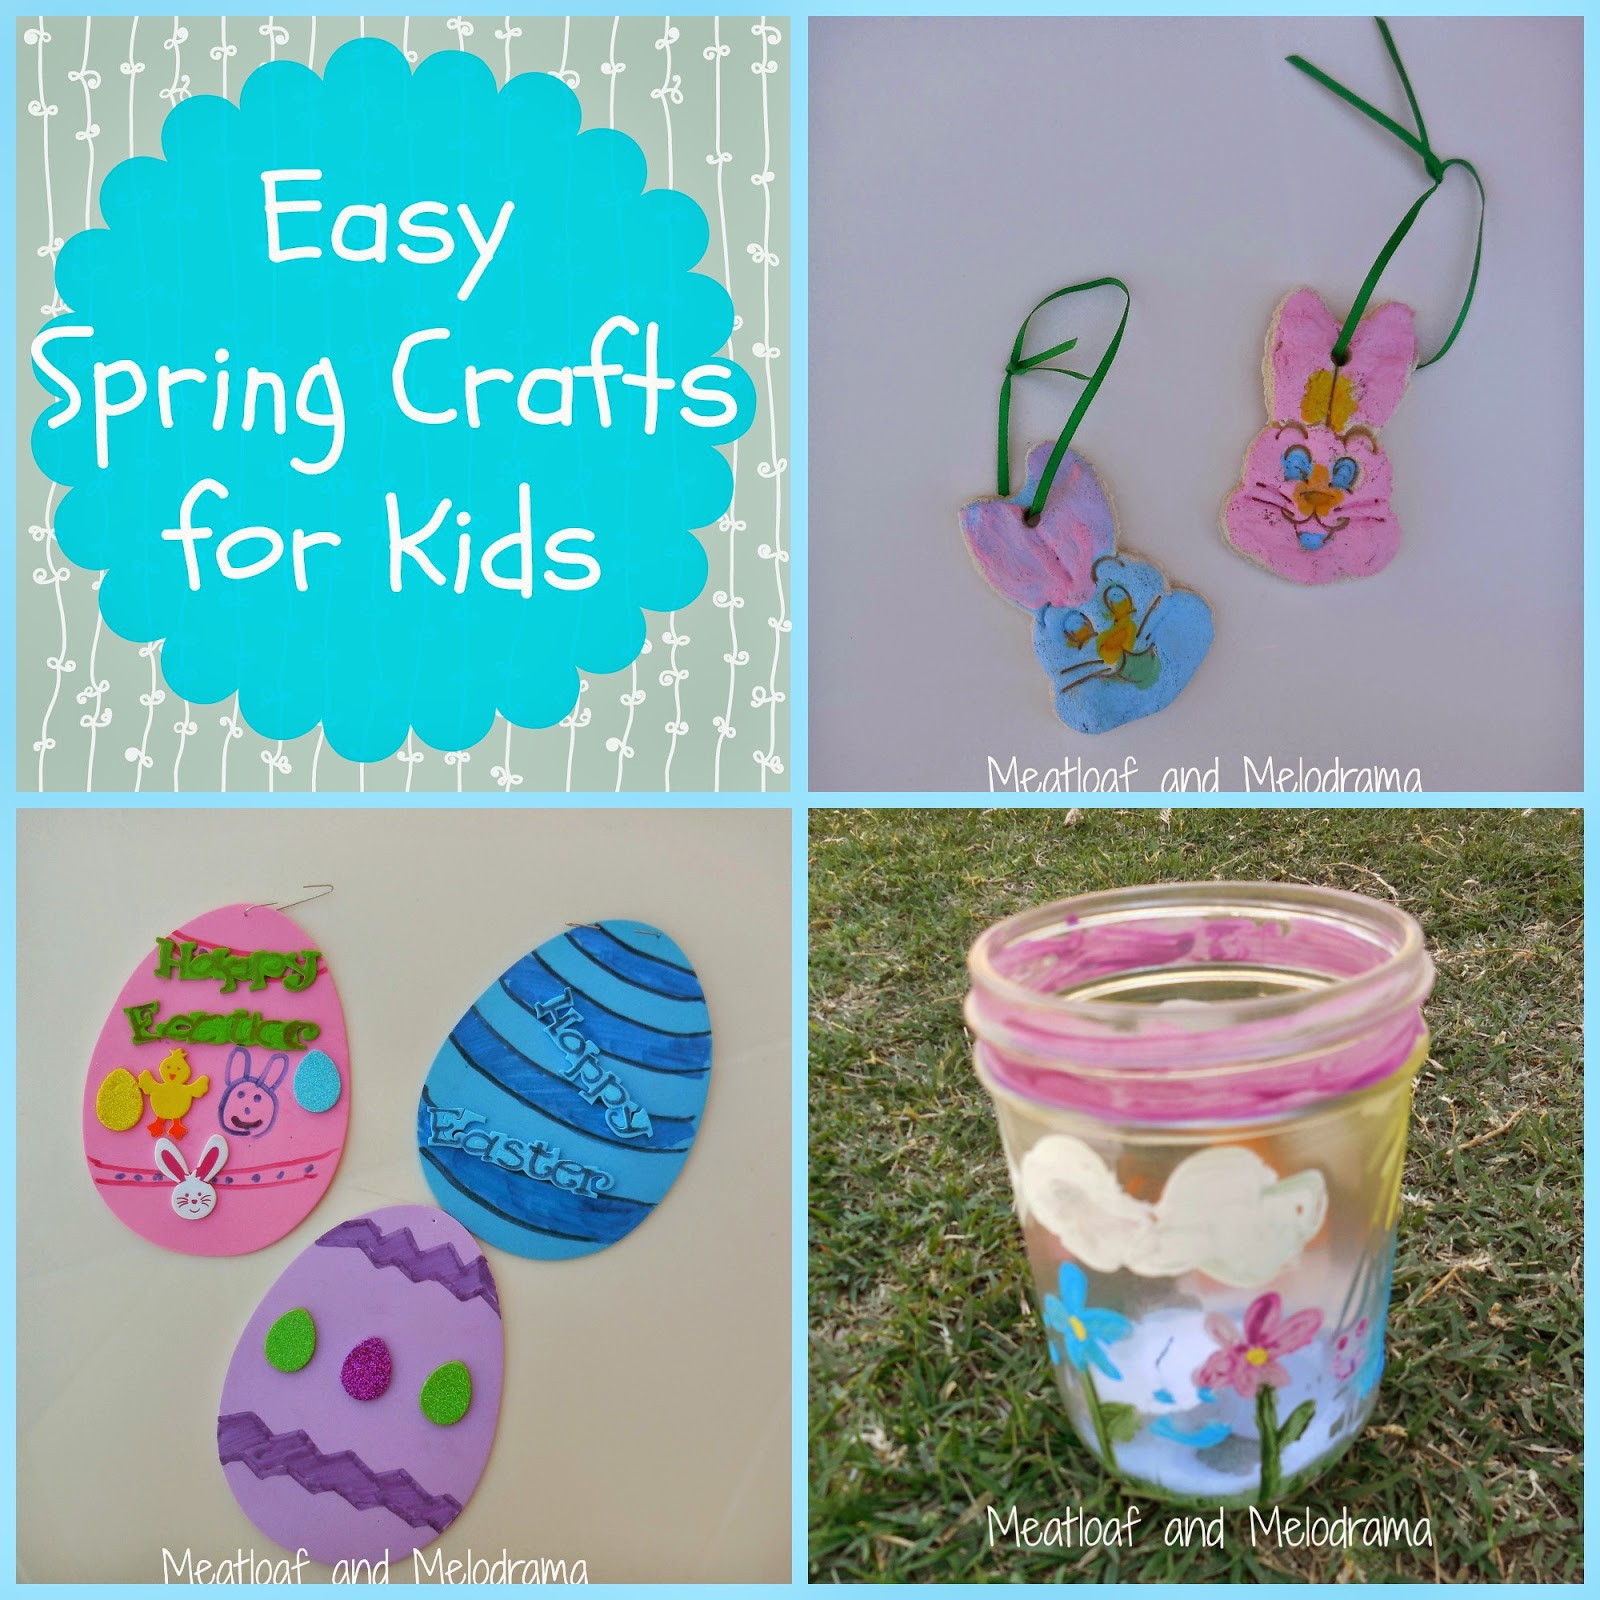 Best ideas about Easy Spring Crafts For Kids . Save or Pin Easy Spring Crafts for Kids Meatloaf and Melodrama Now.